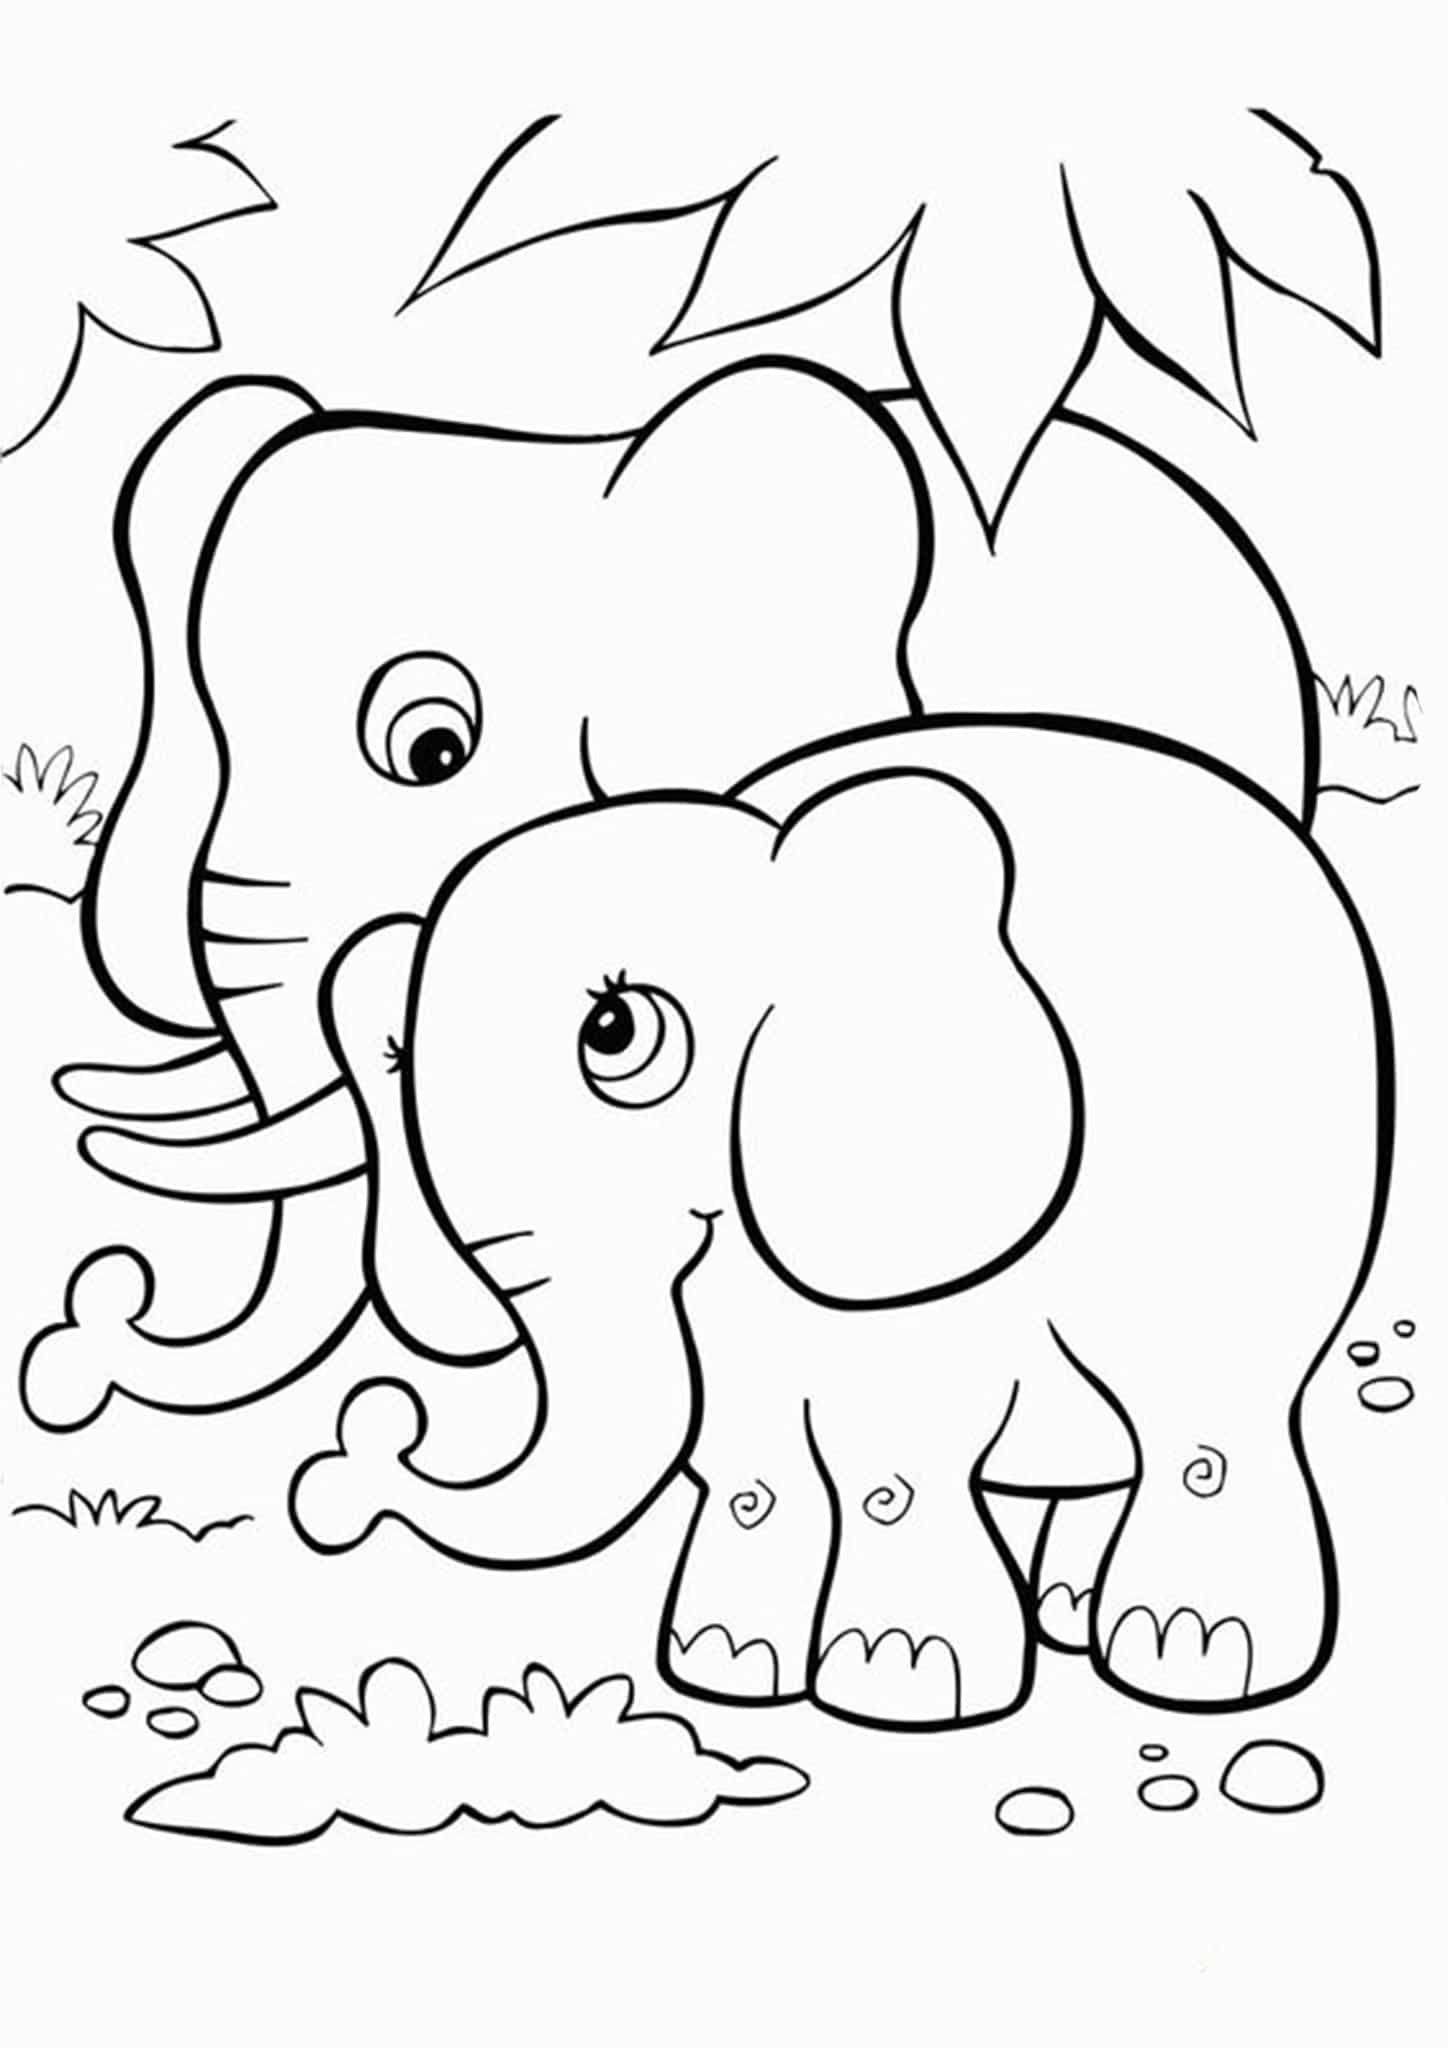 printable elephant coloring pages free printable elephant coloring pages for kids elephant pages coloring printable